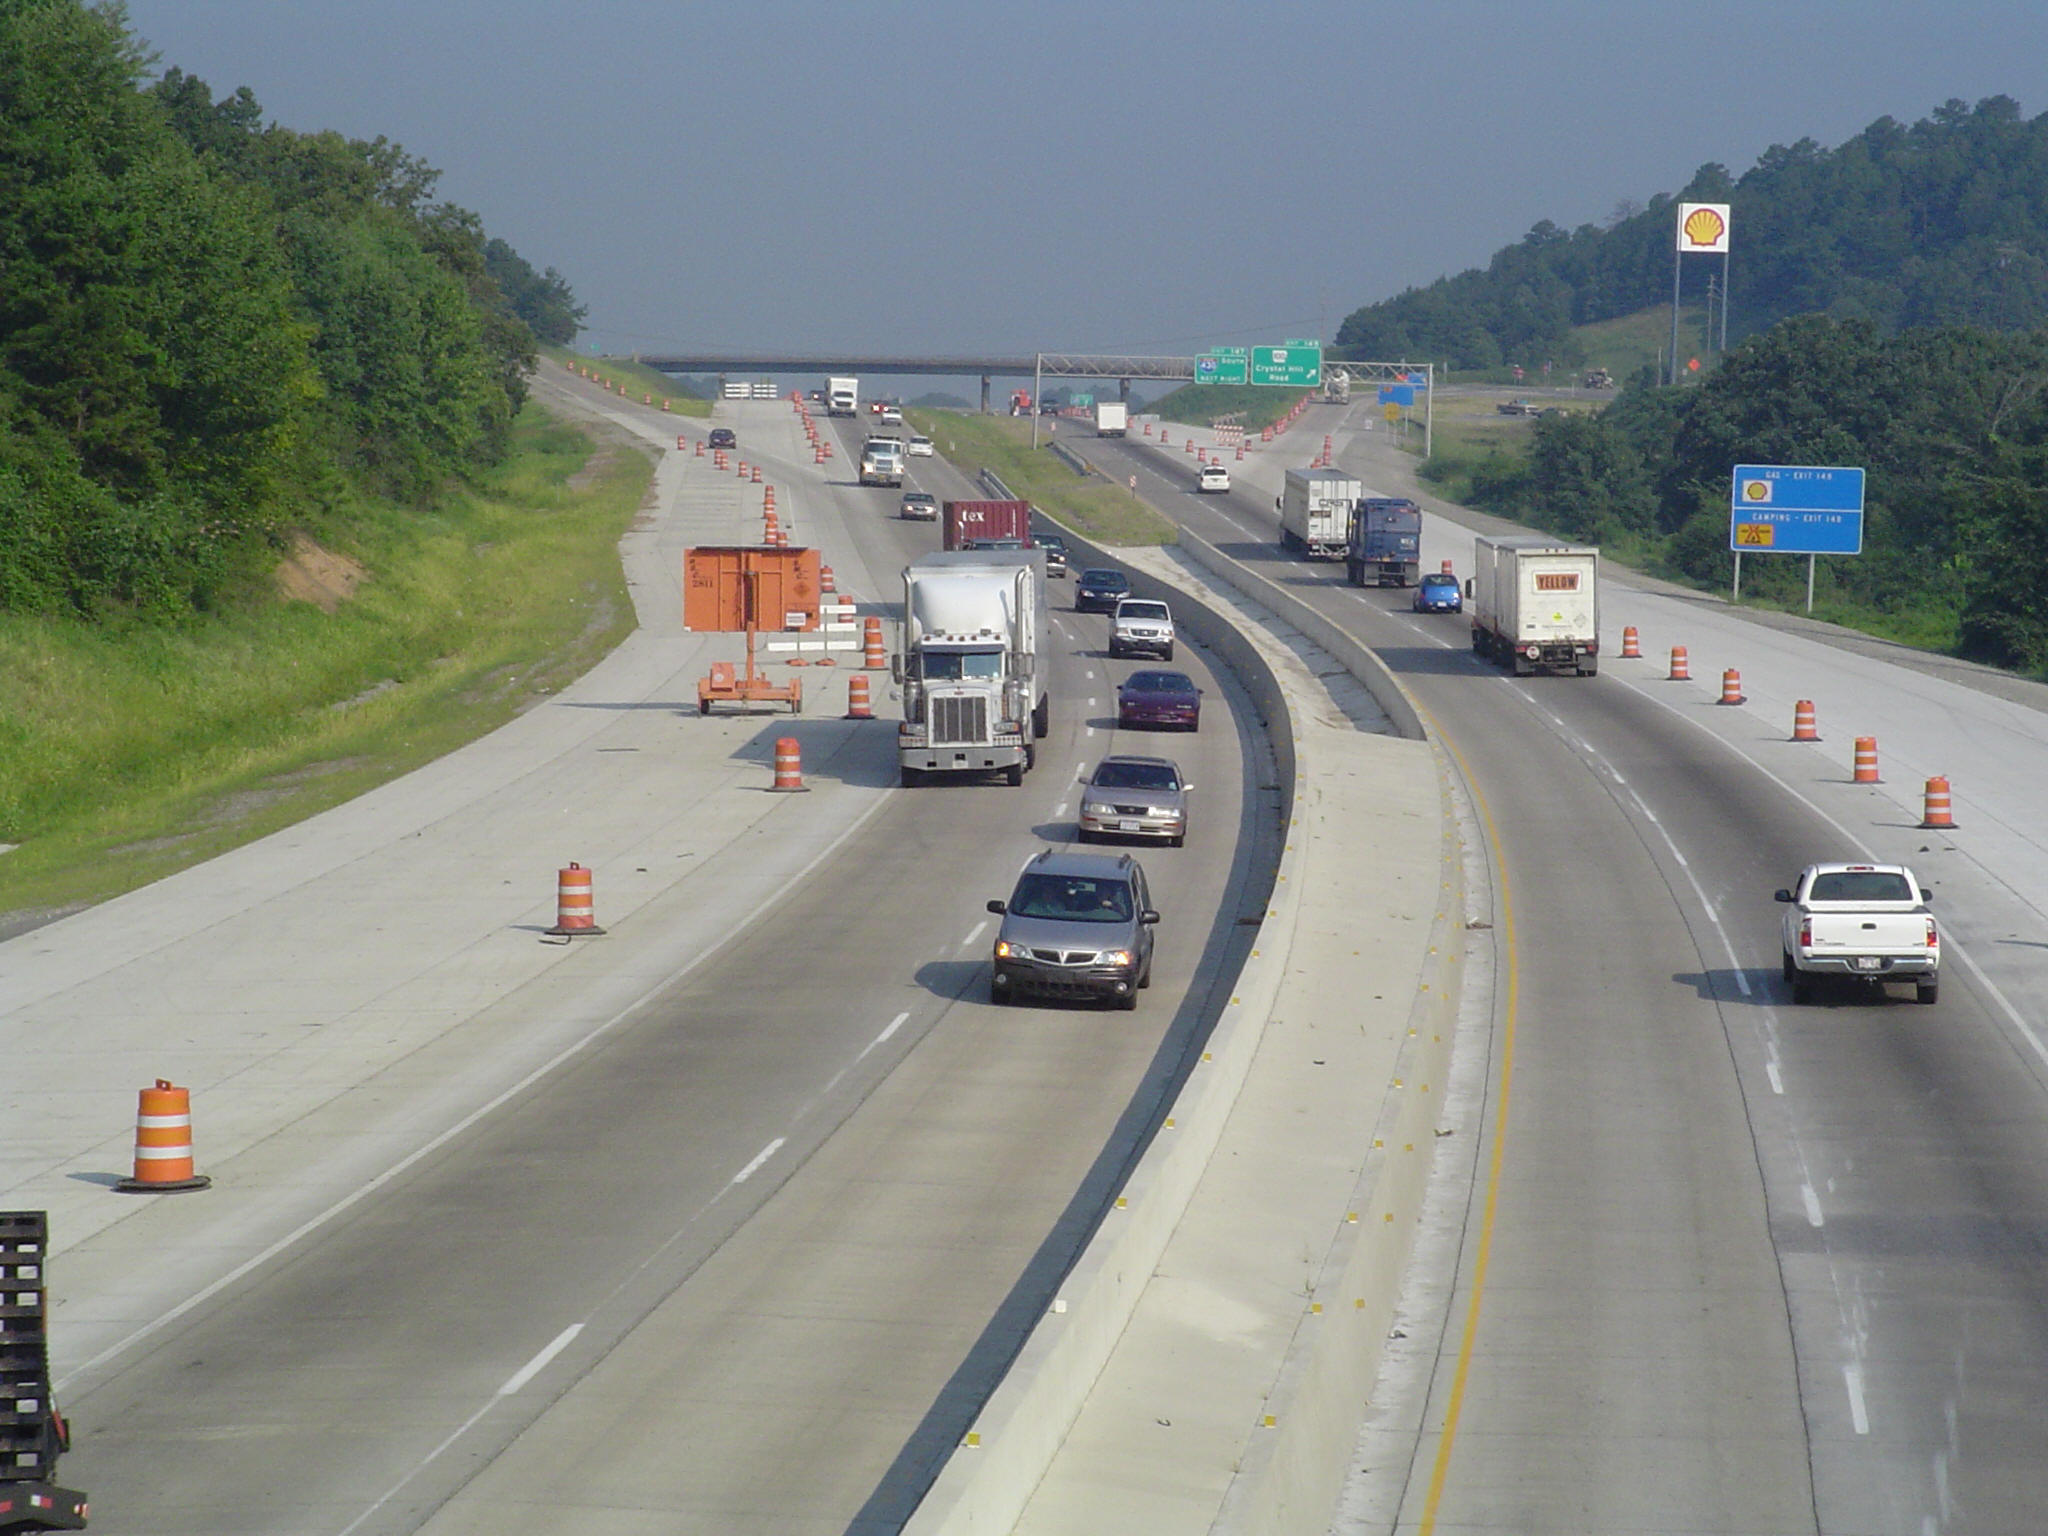 Construction to widen I-40 in Arkansas, which came in last in a state ranking of environmental transpo policies. Image: ##http://www.weaverbailey.com/projects.htm##Weaver Bailey Contractors##